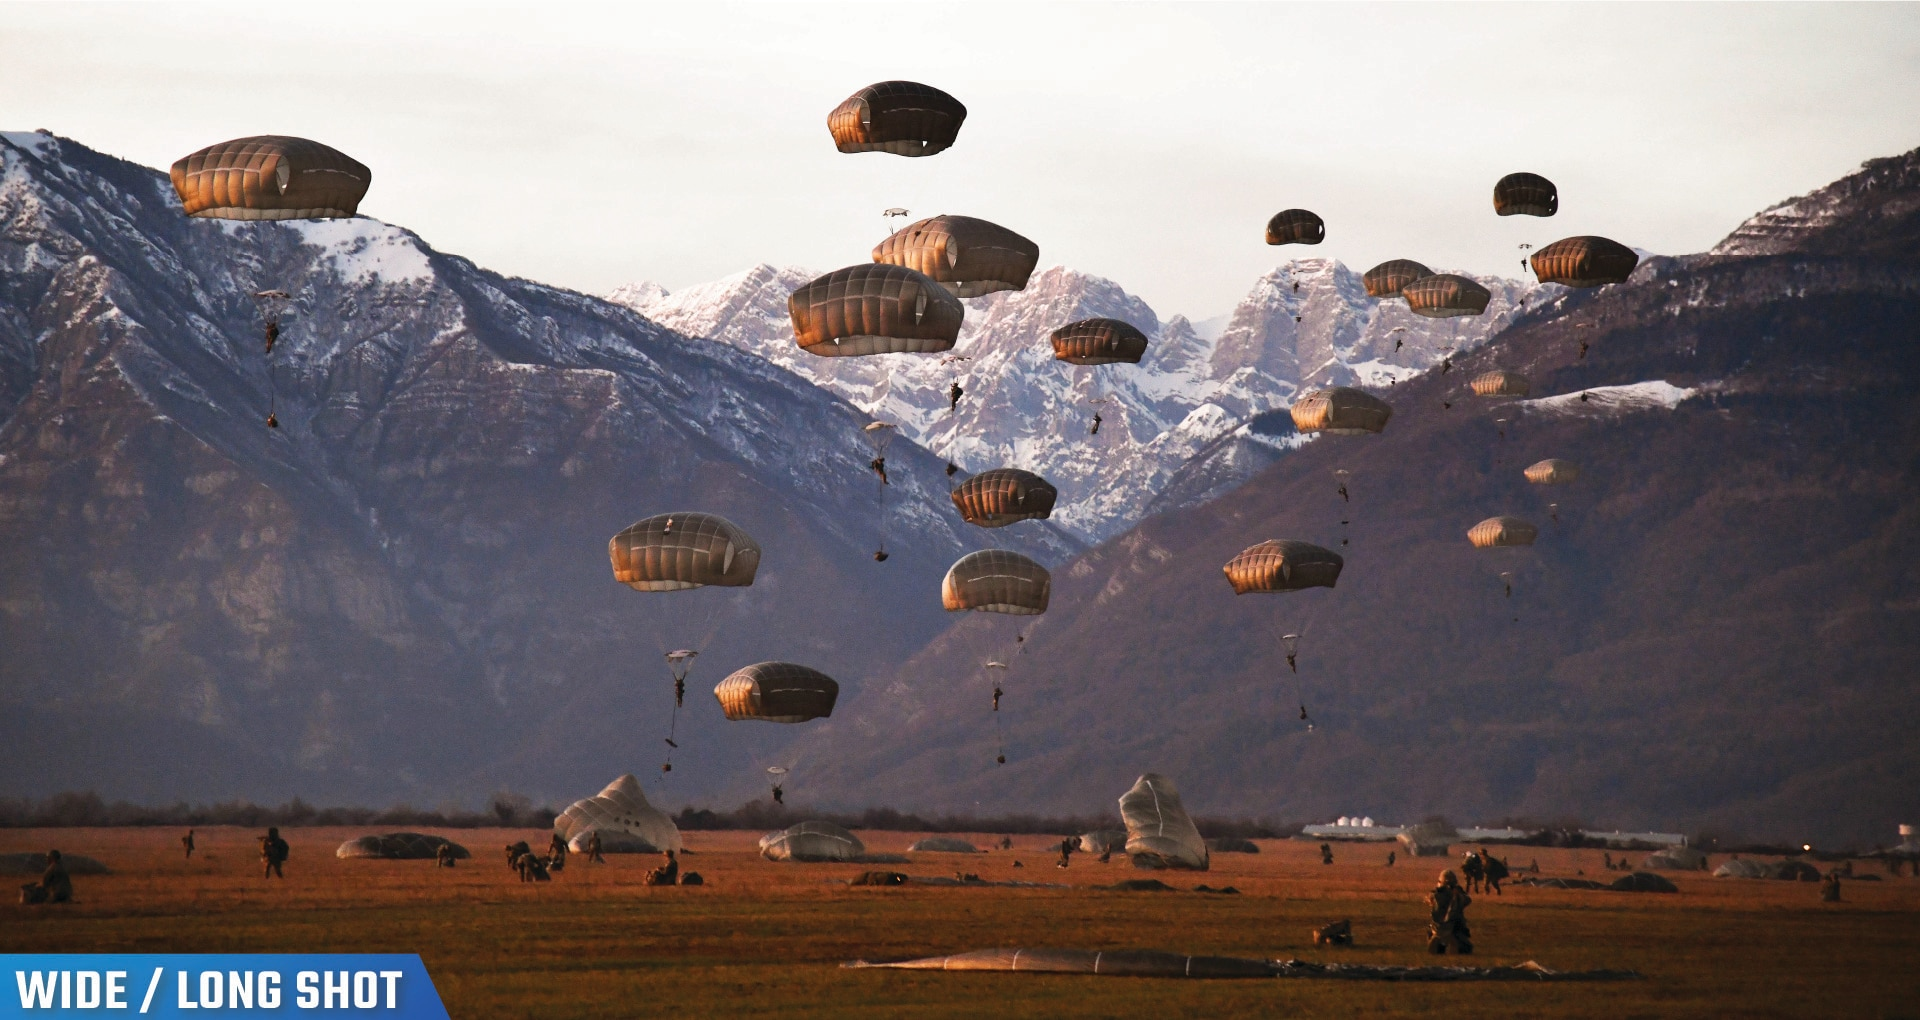 Soldiers freefall wearing parachutes near mountains